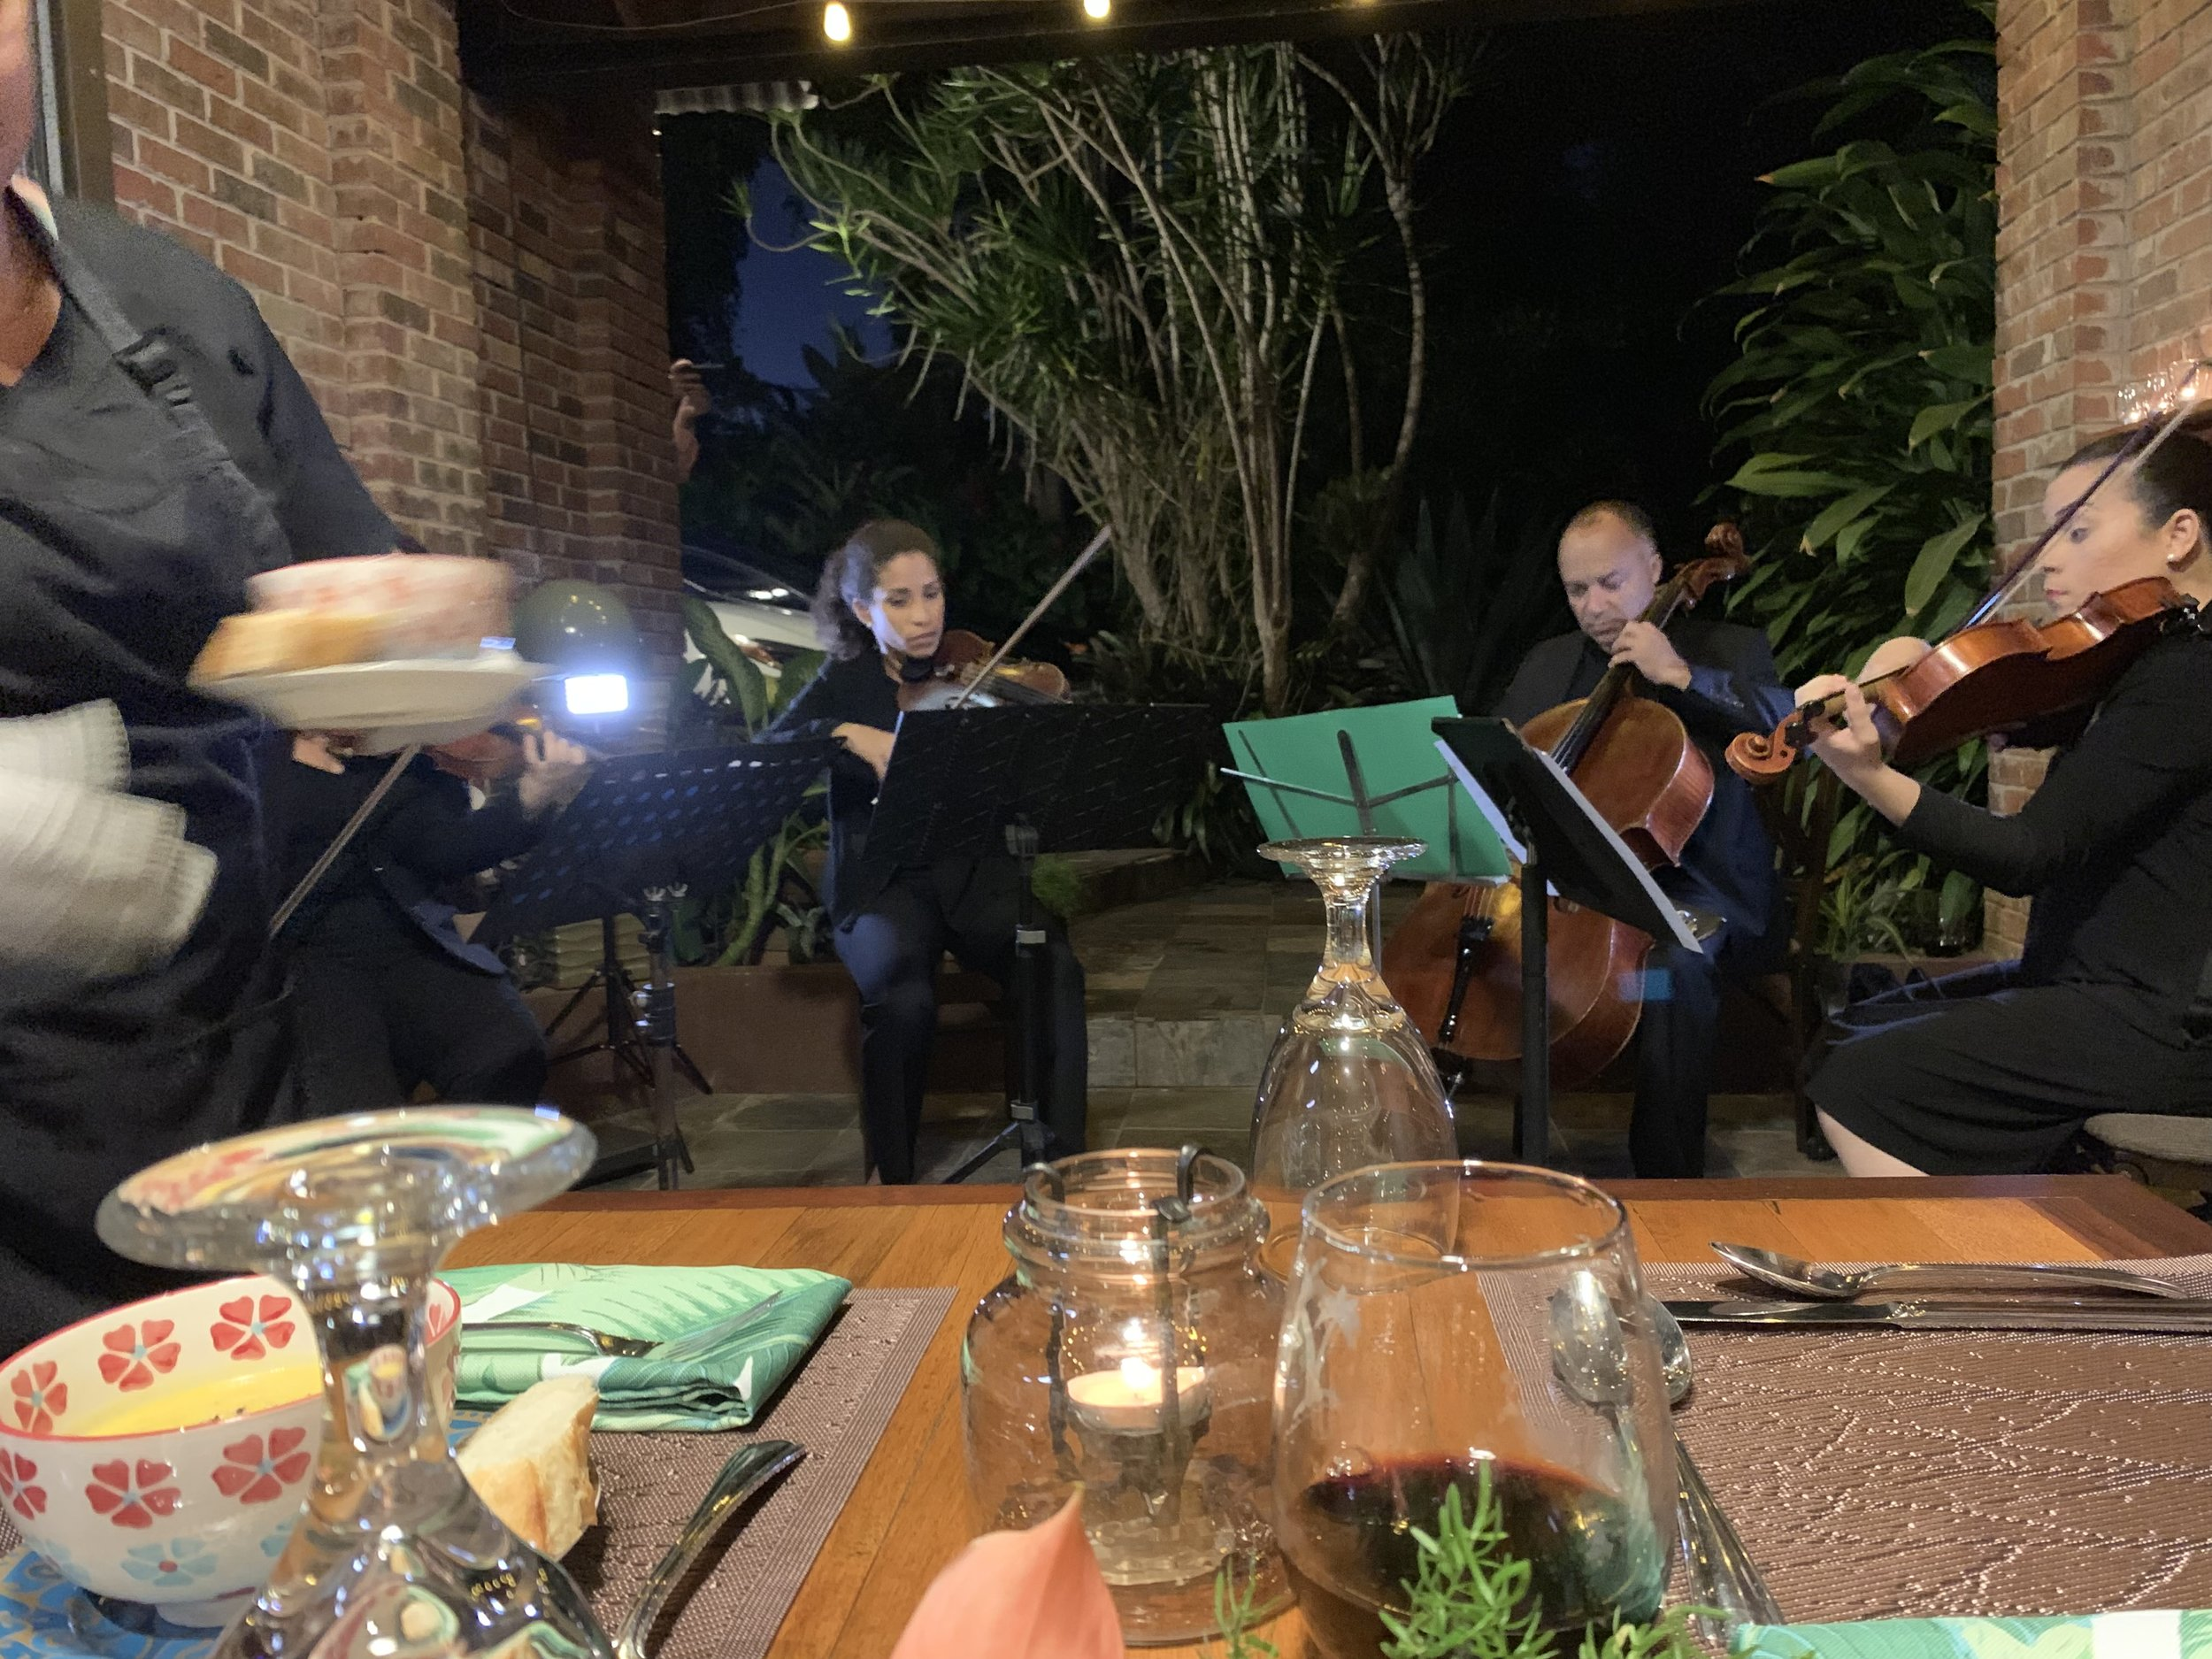 The quartet plays away as the first course is served.